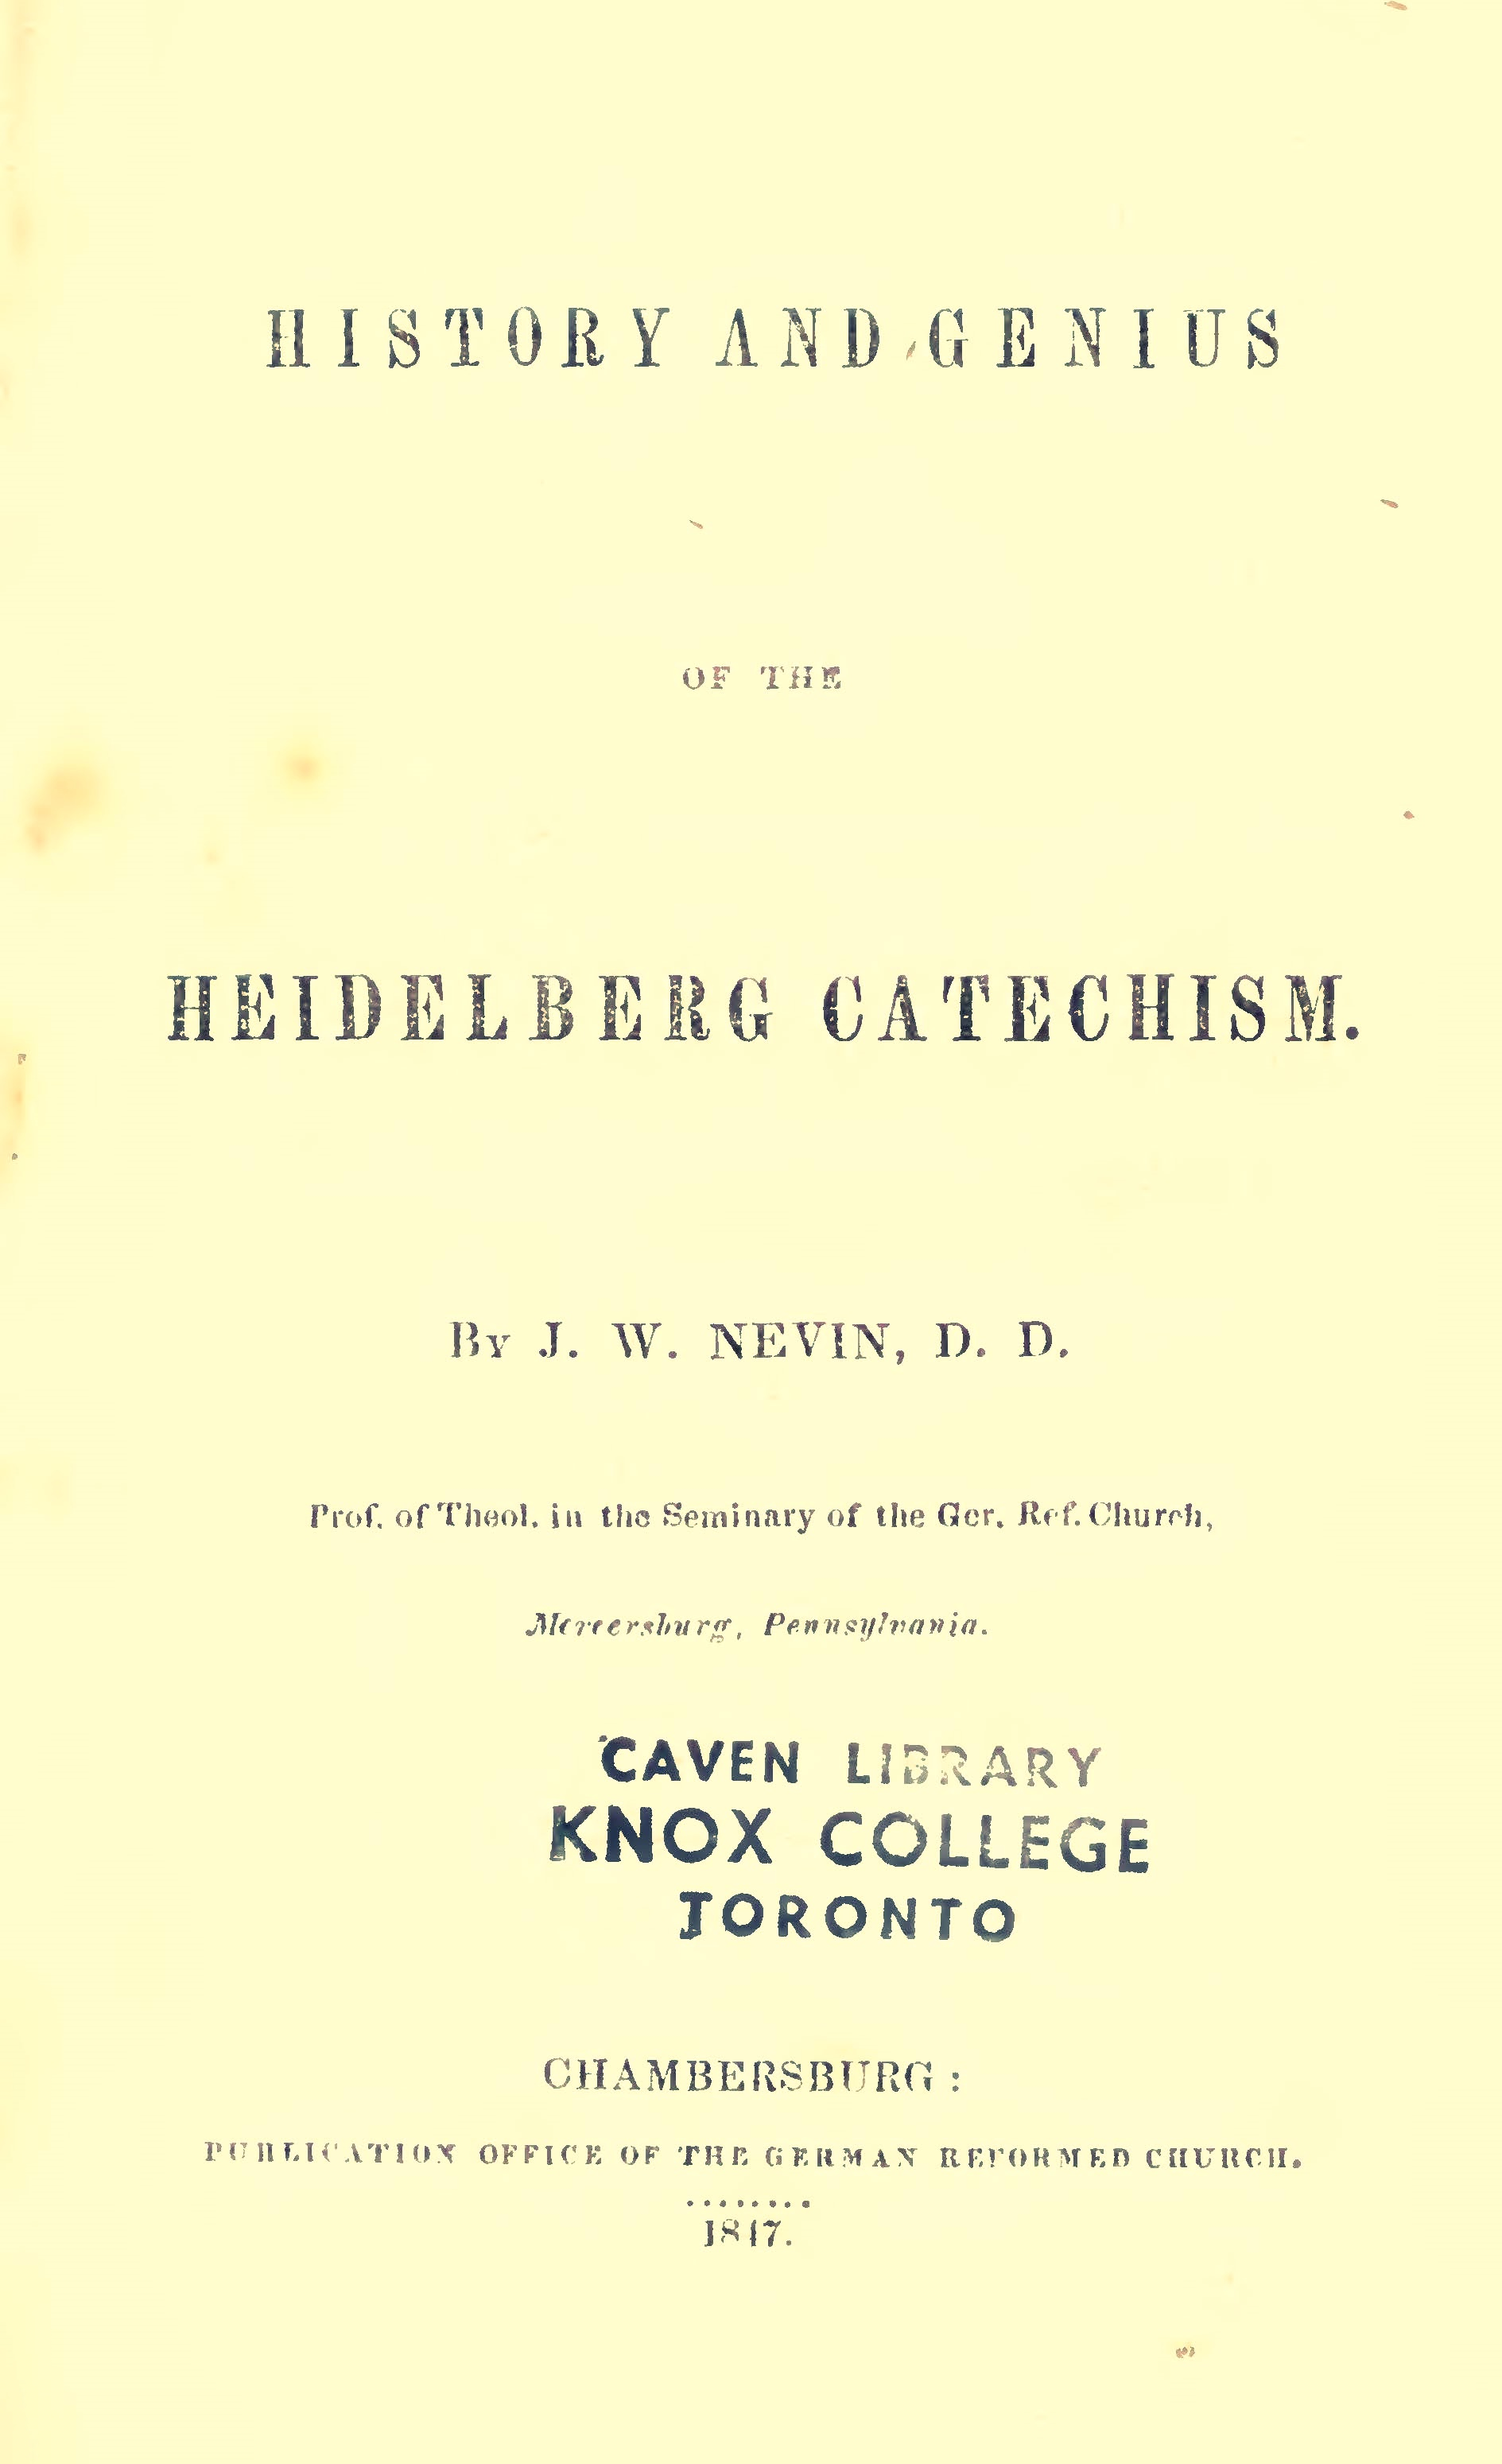 Nevin, John Williamson, History and Genius of the Heidelberg Catechism Title Page.jpg